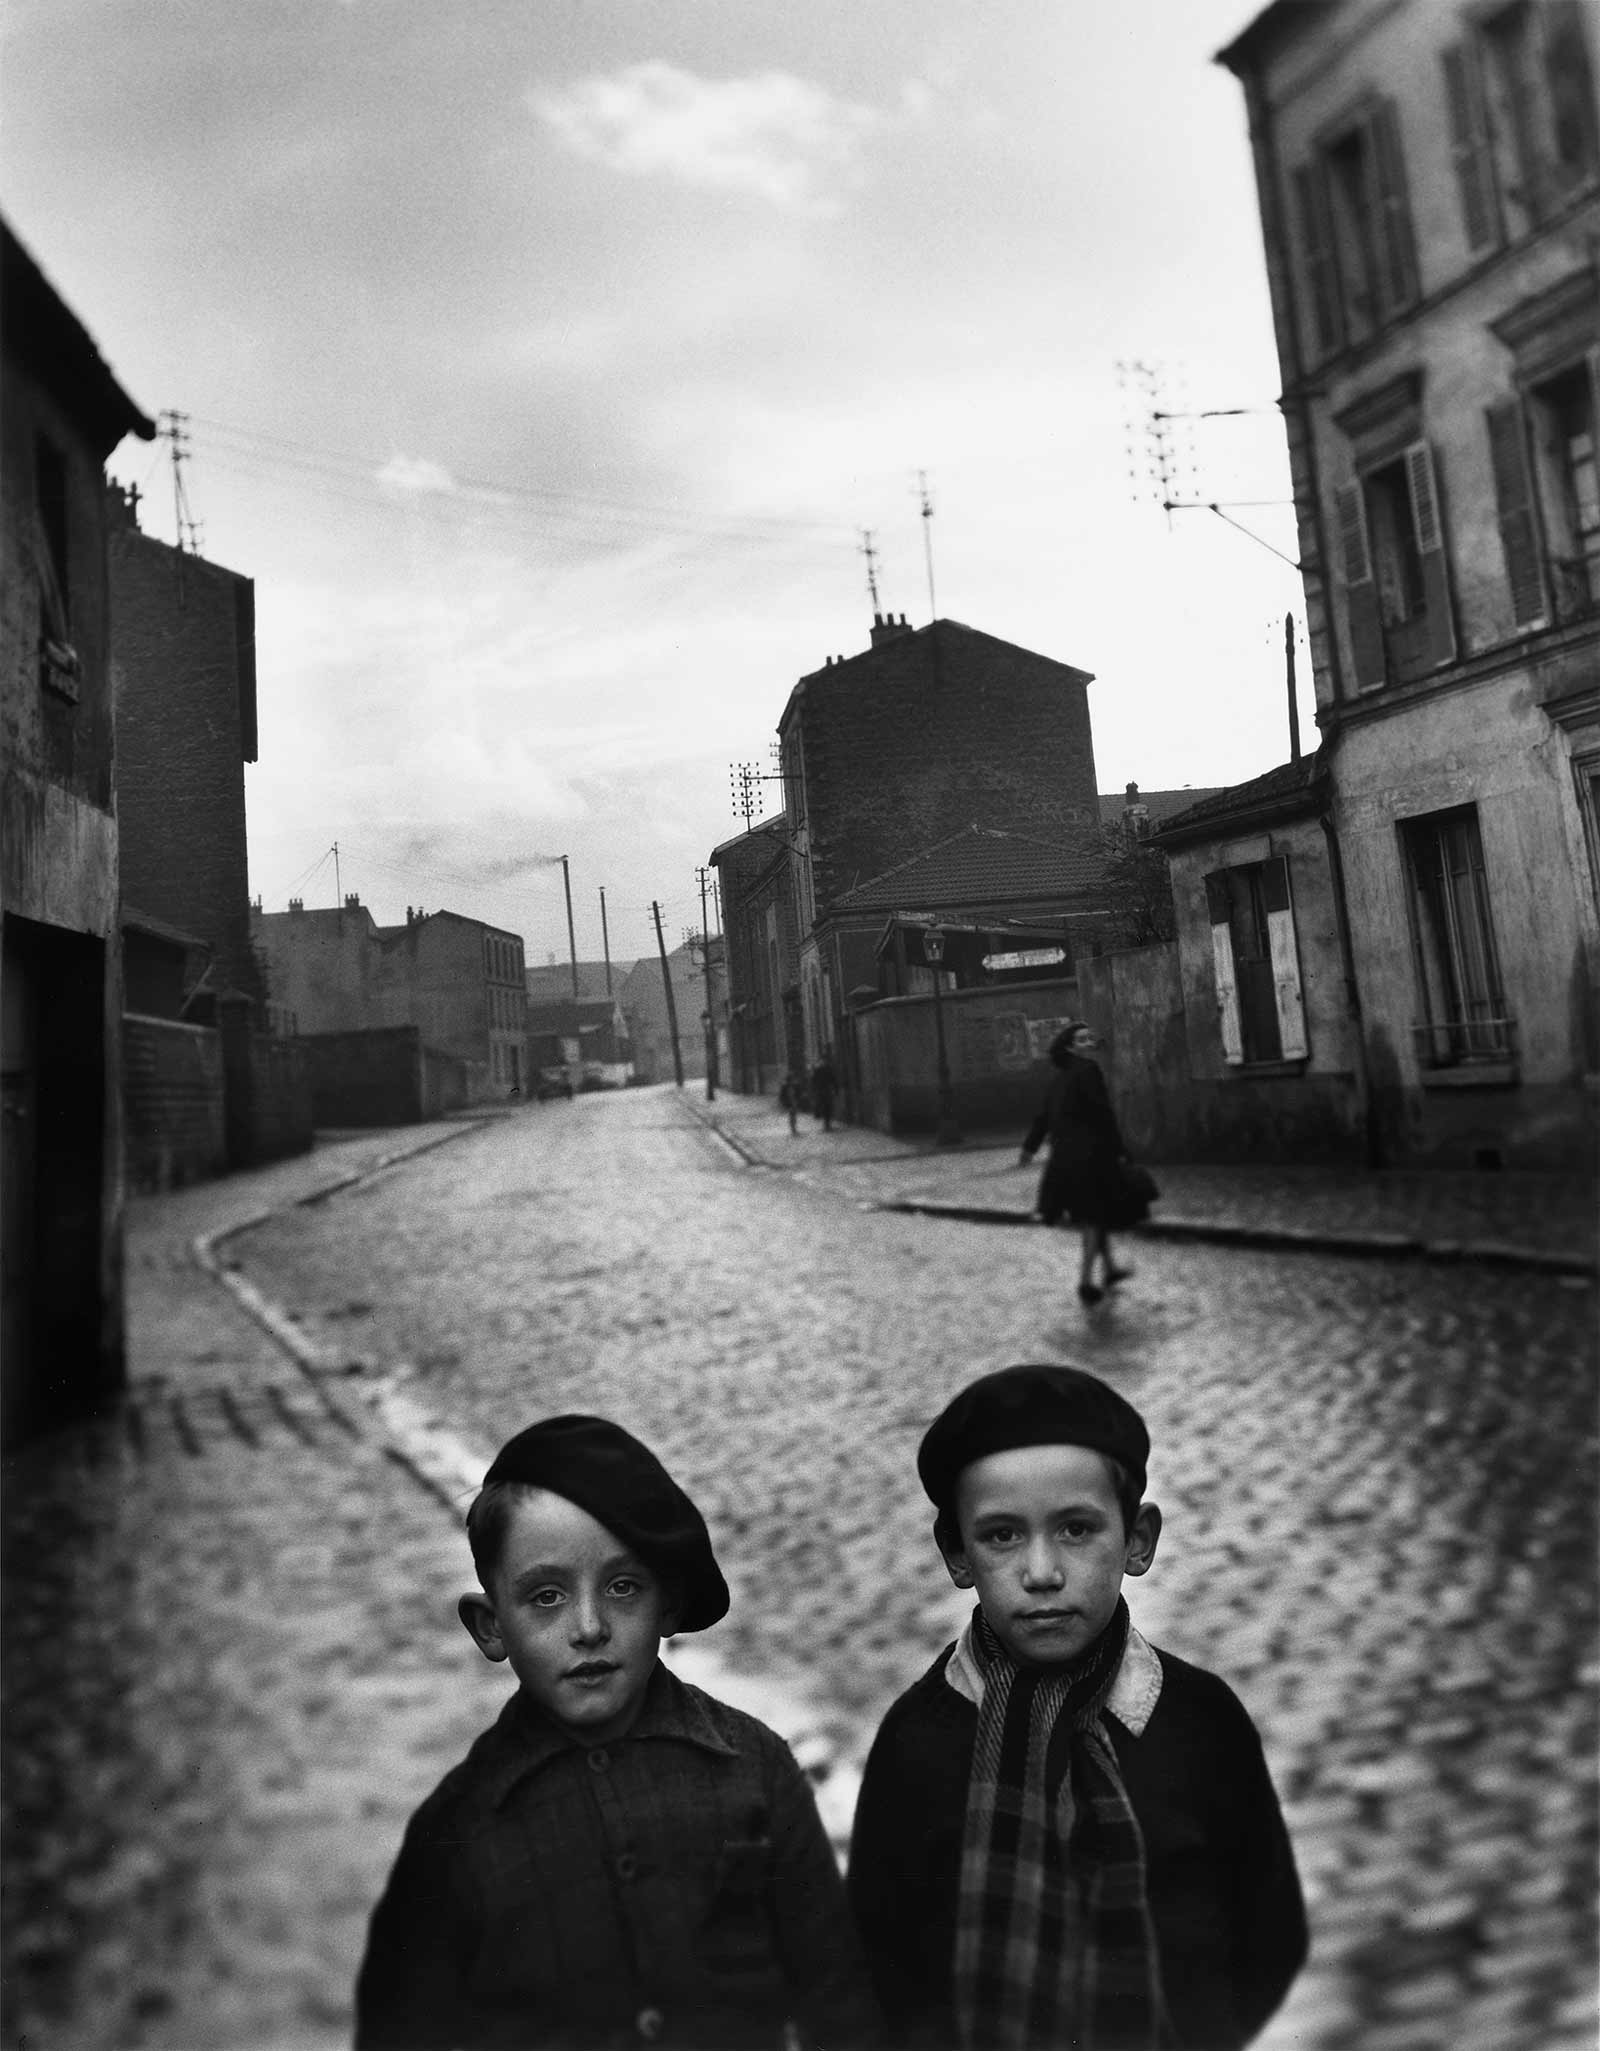 The Secret Streets of Brassaï & Louis Stettner | by Carole Naggar | NYR Daily | The New York Review of Books